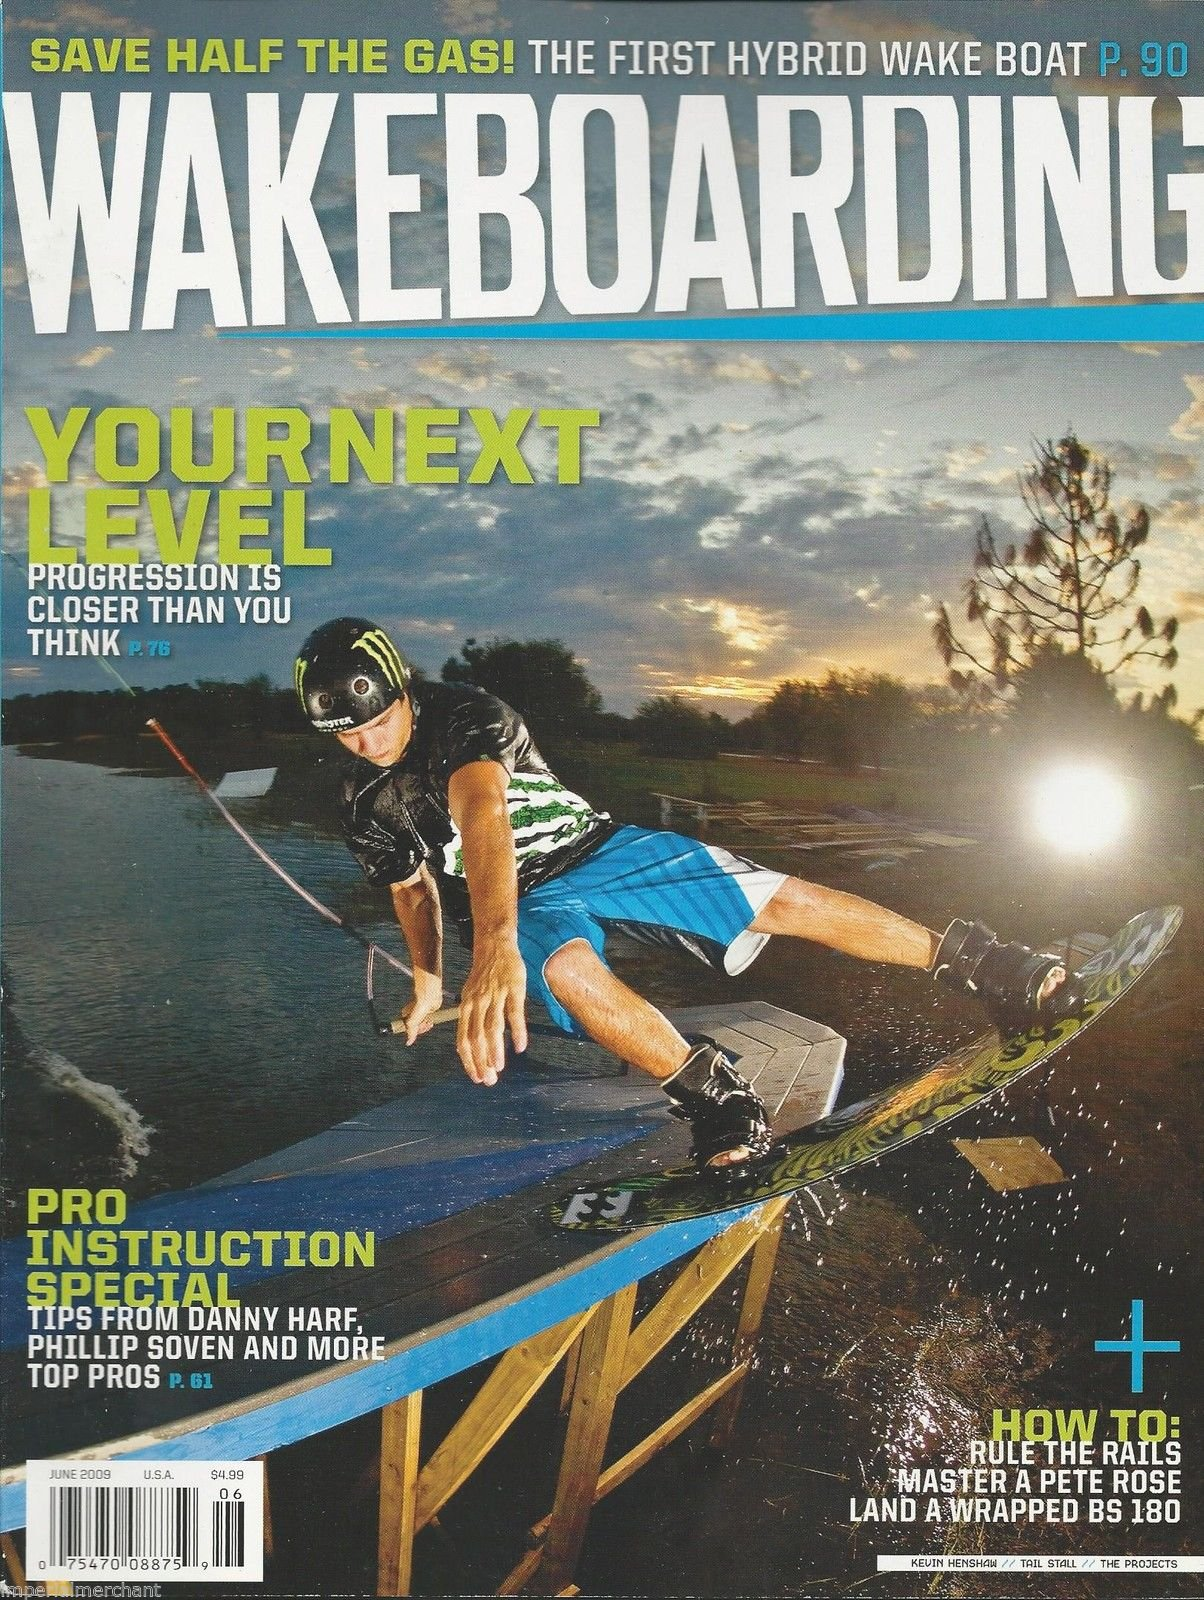 WAKEBOARDING MAGAZINE June 2009 (Kevin Henshaw on cover. Pro-Instruction Special with Tips From Danny Harf, Phillip Soven and more, Volume 17, Issue 5) PDF